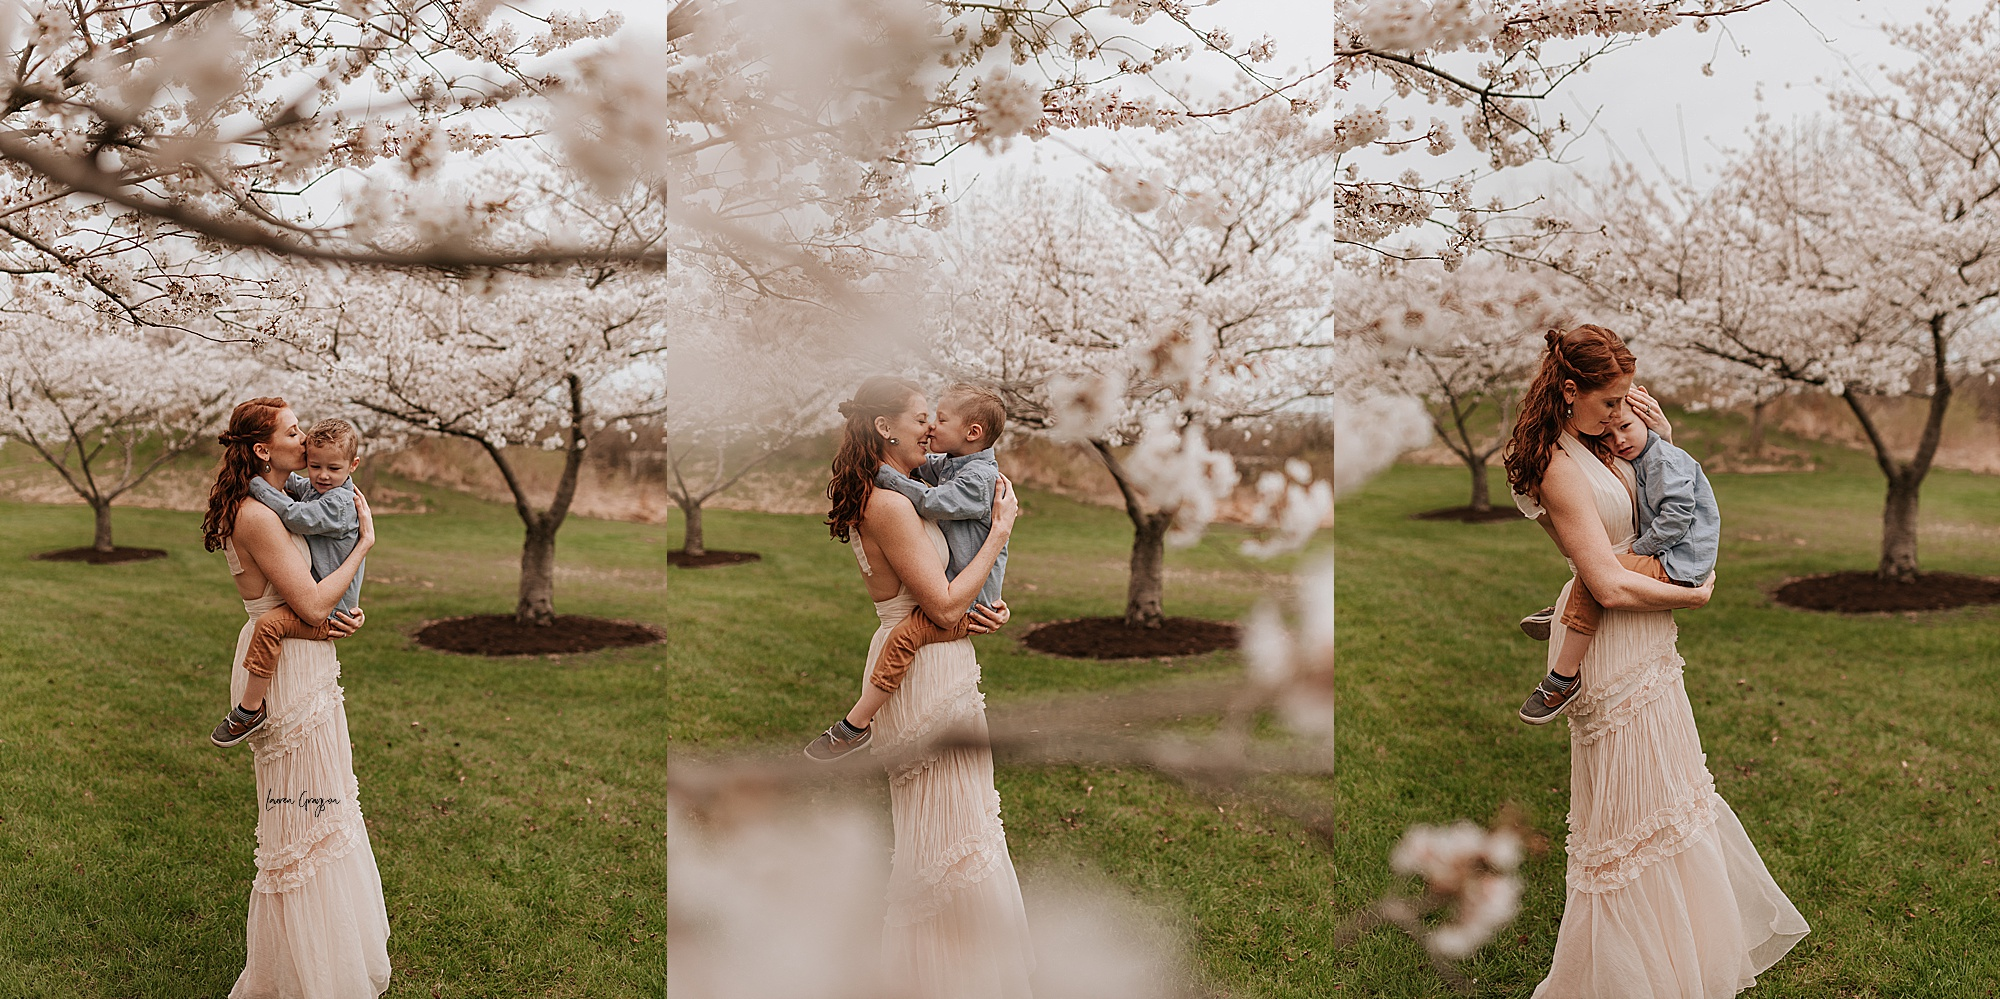 lauren-grayson-photography-cleveland-ohio-motherhood-family-child-photo-session-cherry-blossoms_0007.jpg